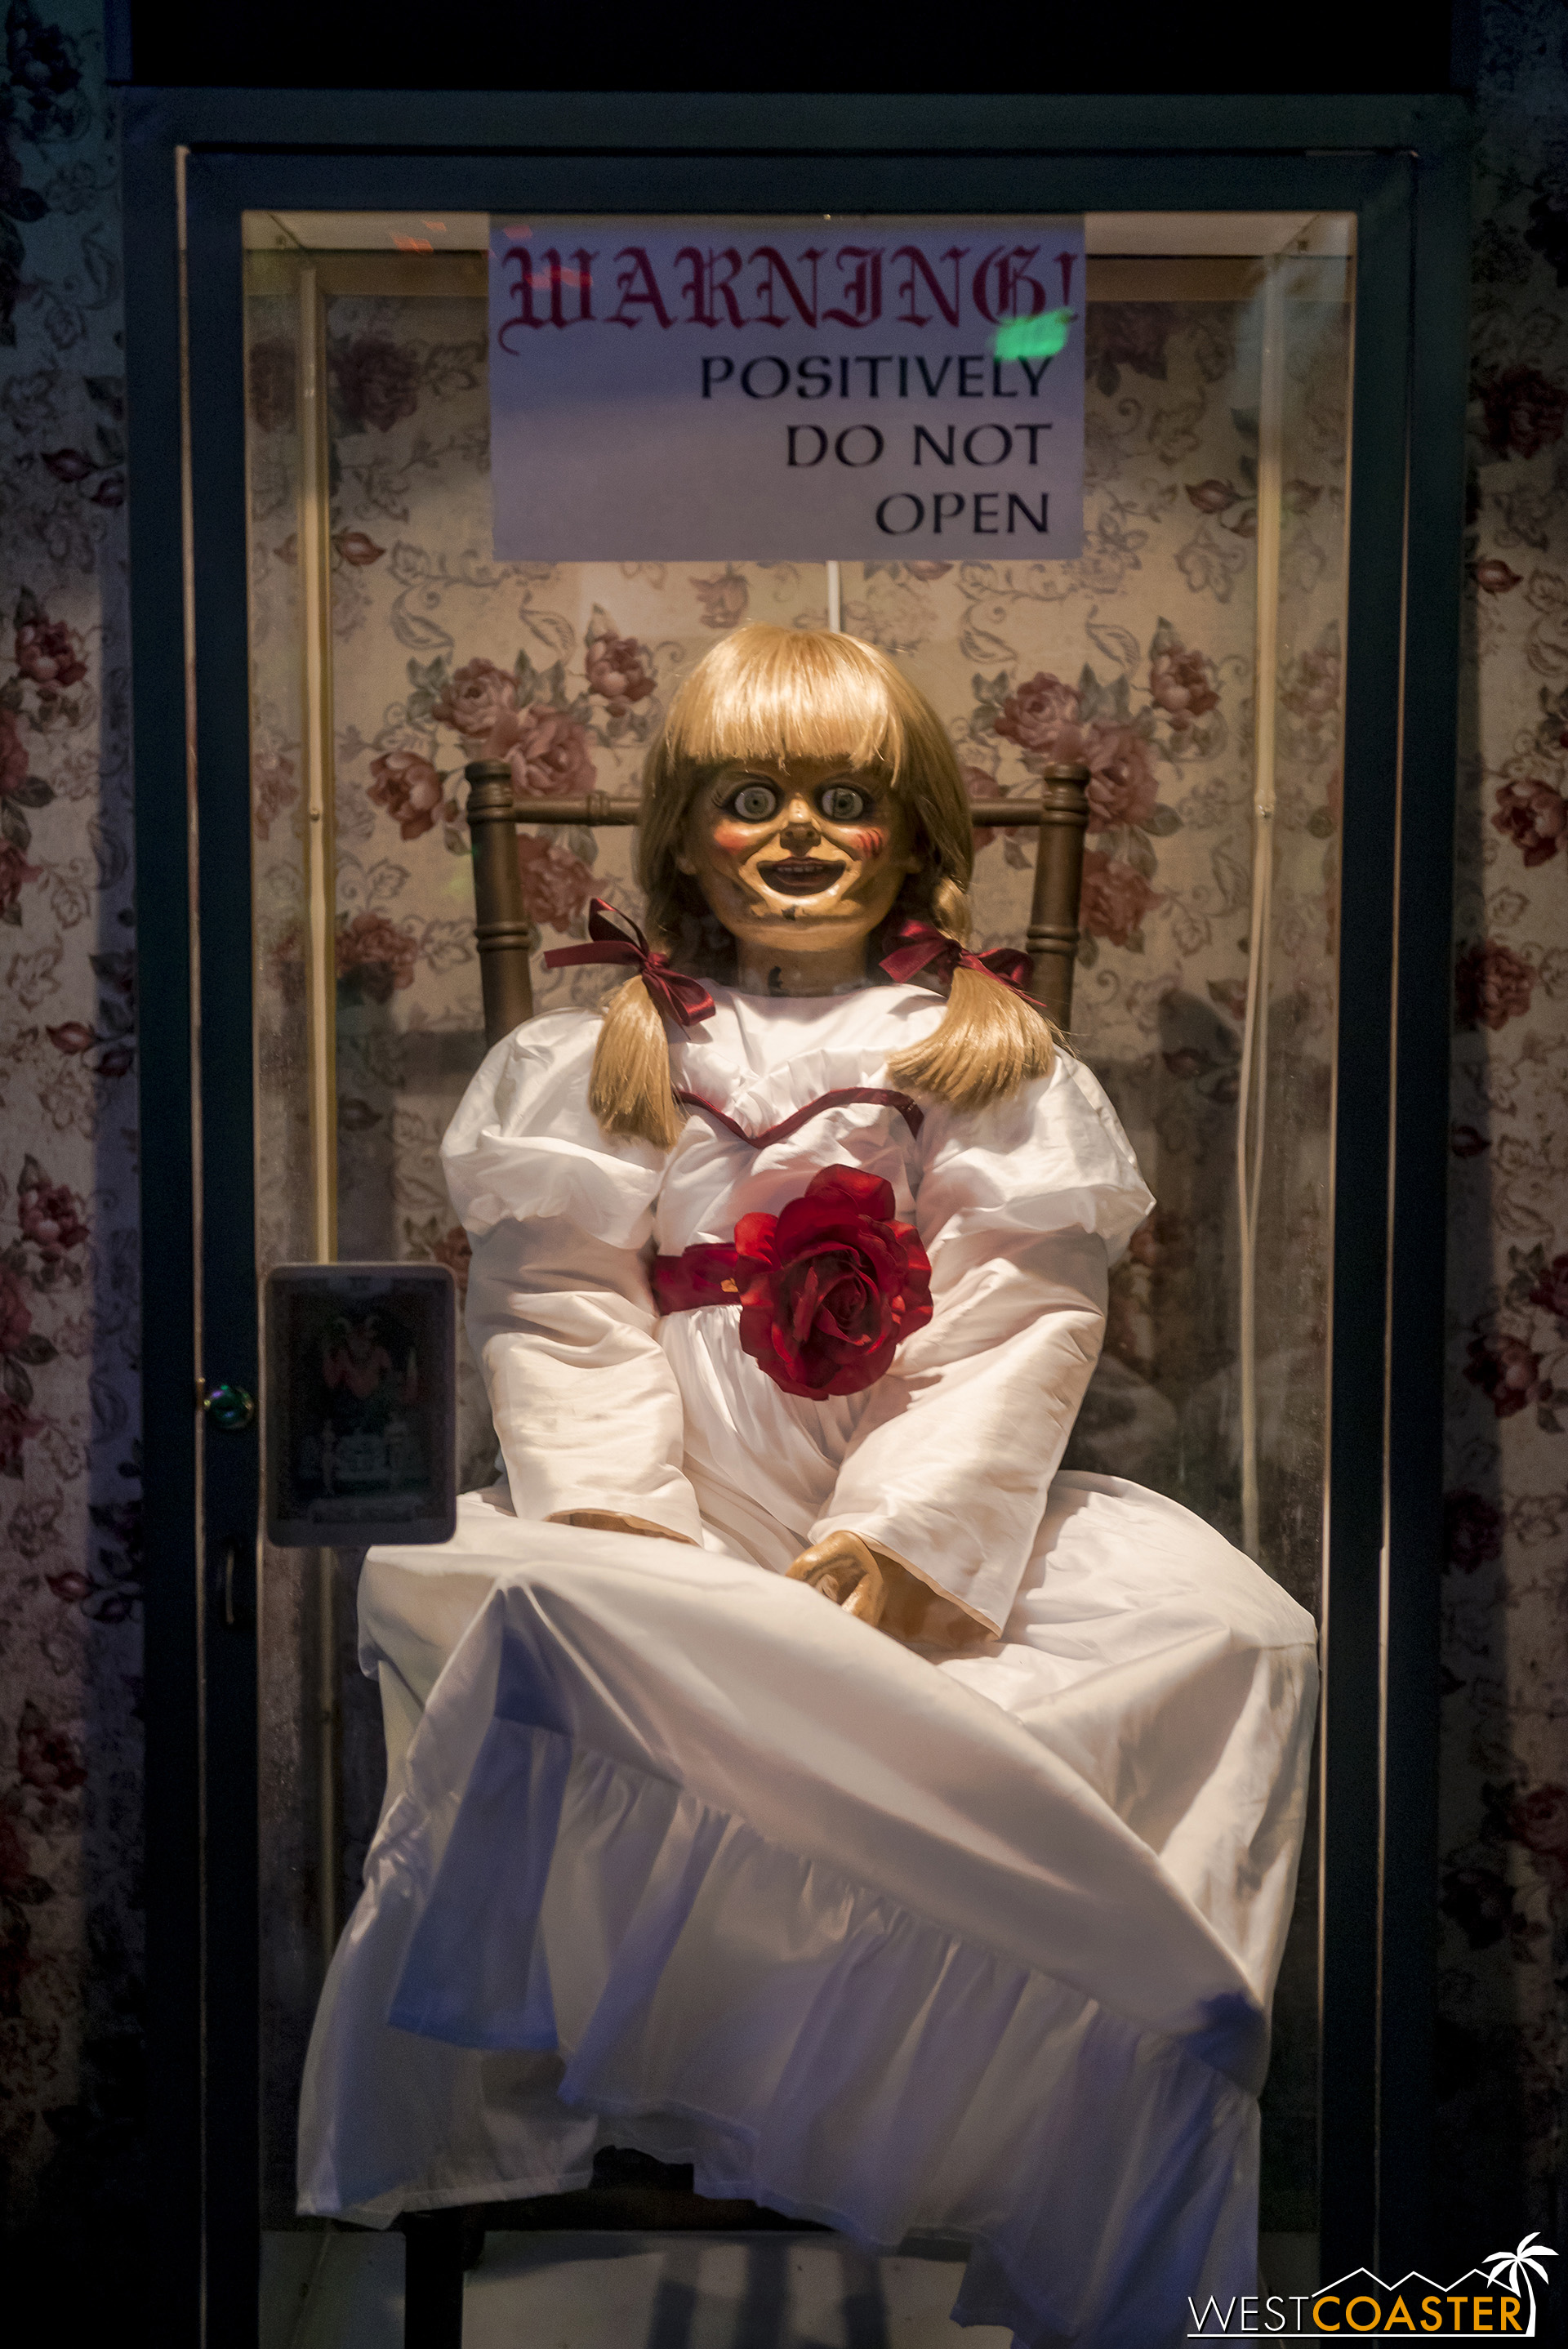 Creepy Annabelle doll.  Or perhaps Alcoholic Annabelle in this setting.